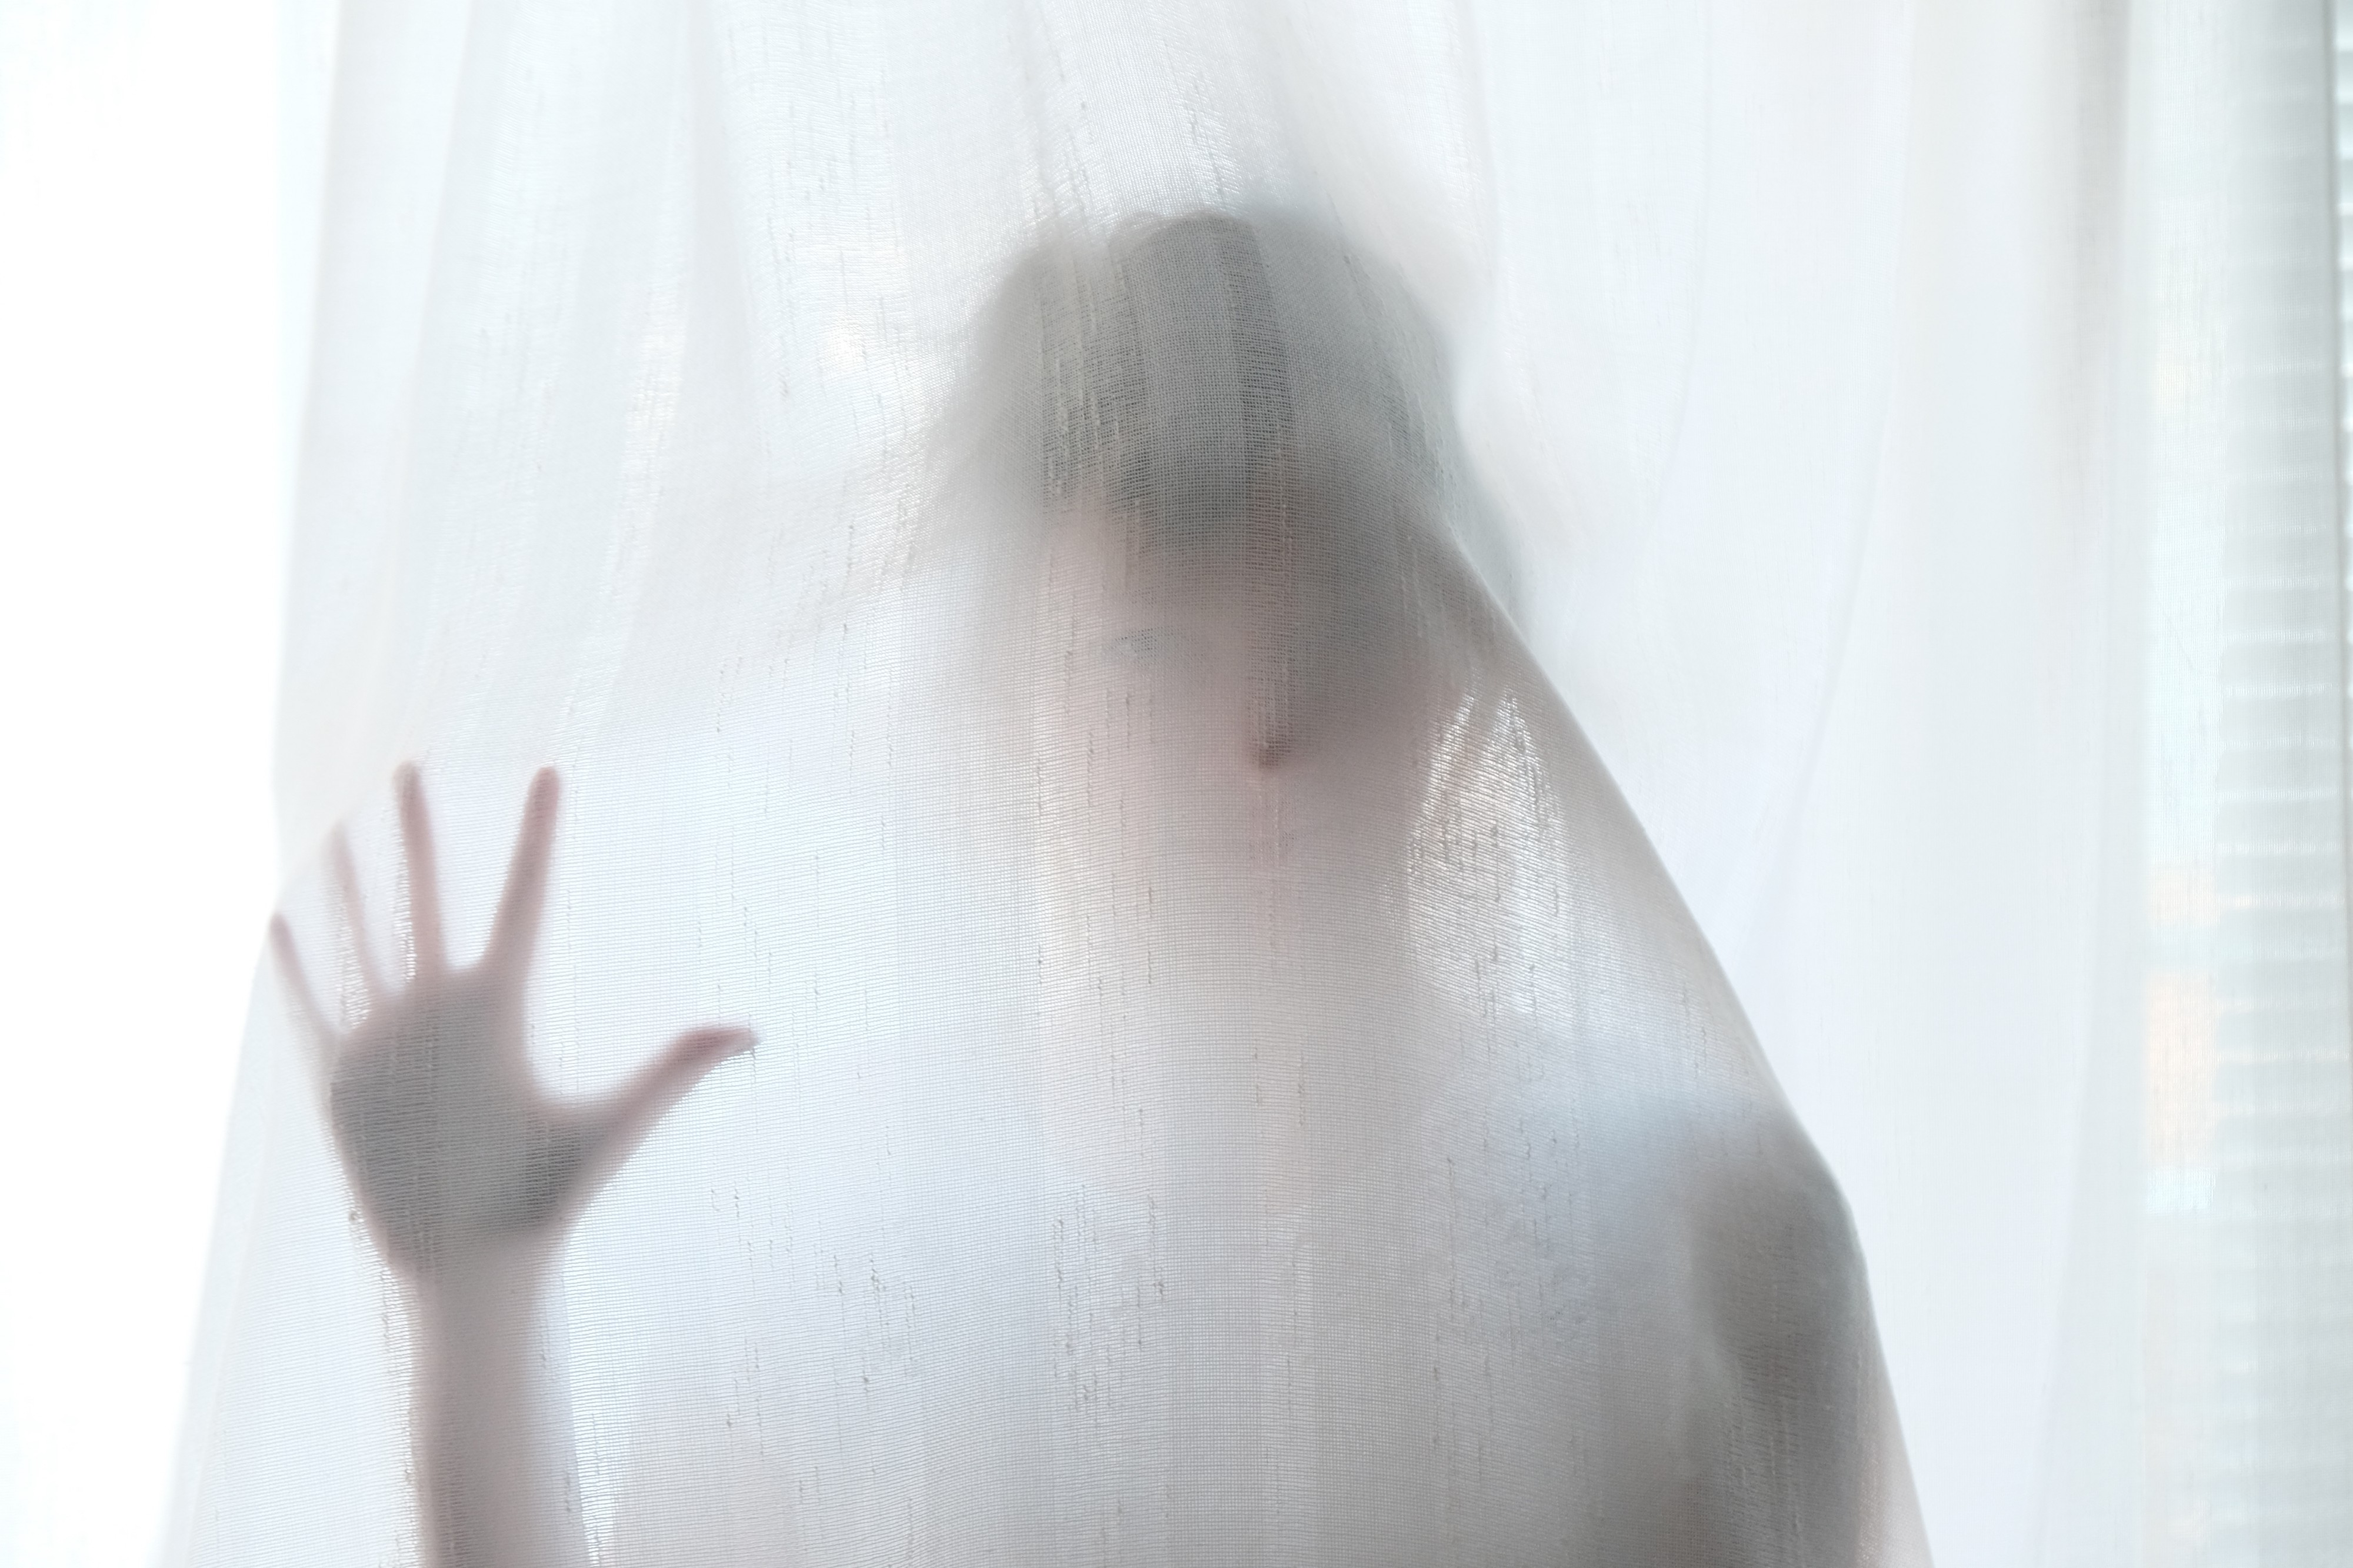 a shadowed figure behind a curtain raising a hand up. It looks to be a ghost or a phantom.